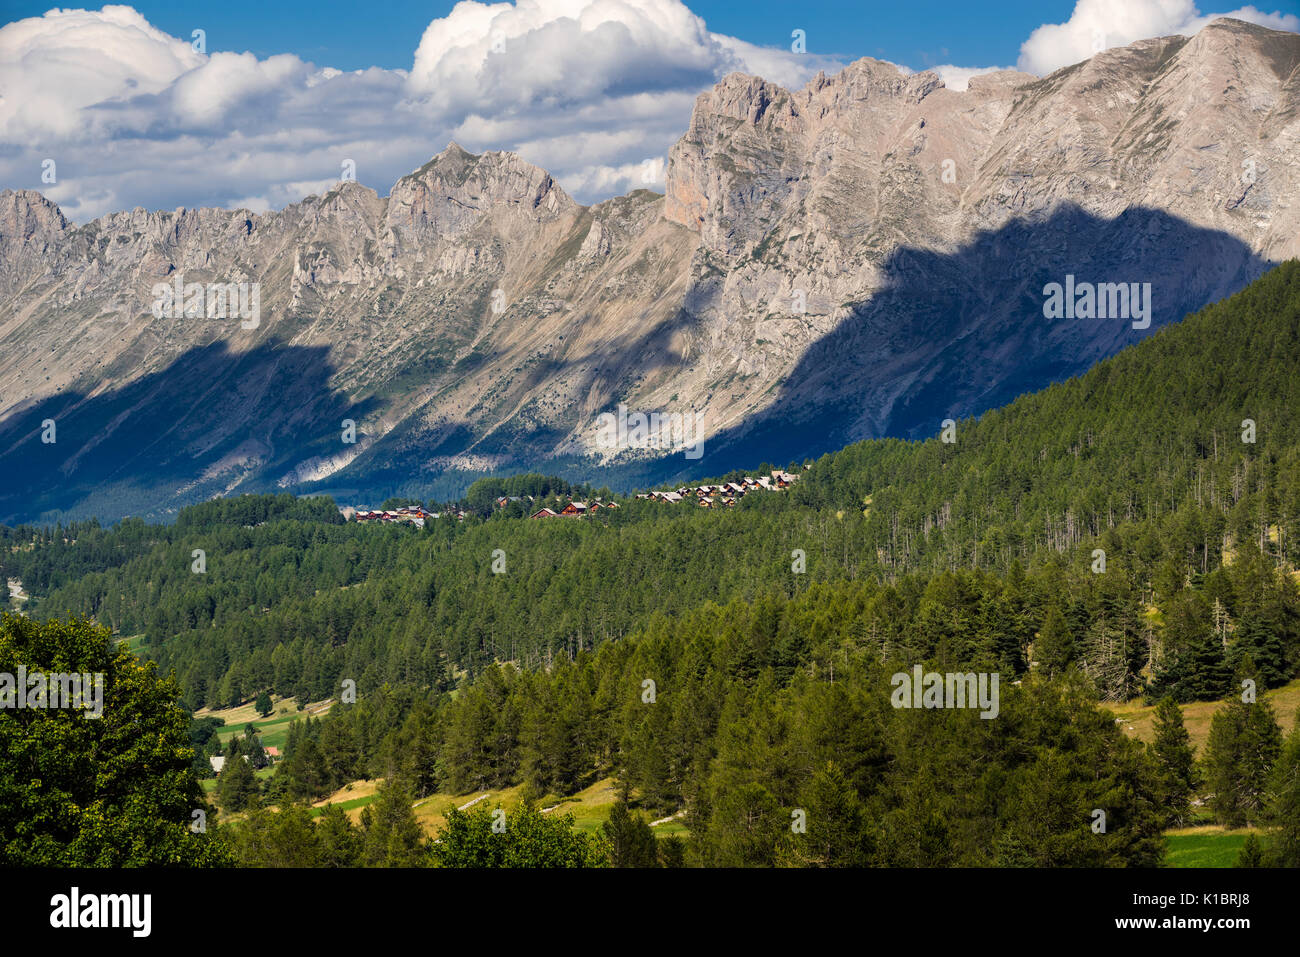 Summer in the Devoluy with chalets of La Joue du Loup (ski resort) and the peaks of the Faraut Mountain (Faraut Breccia and Pic de Cabournasse). Haute - Stock Image